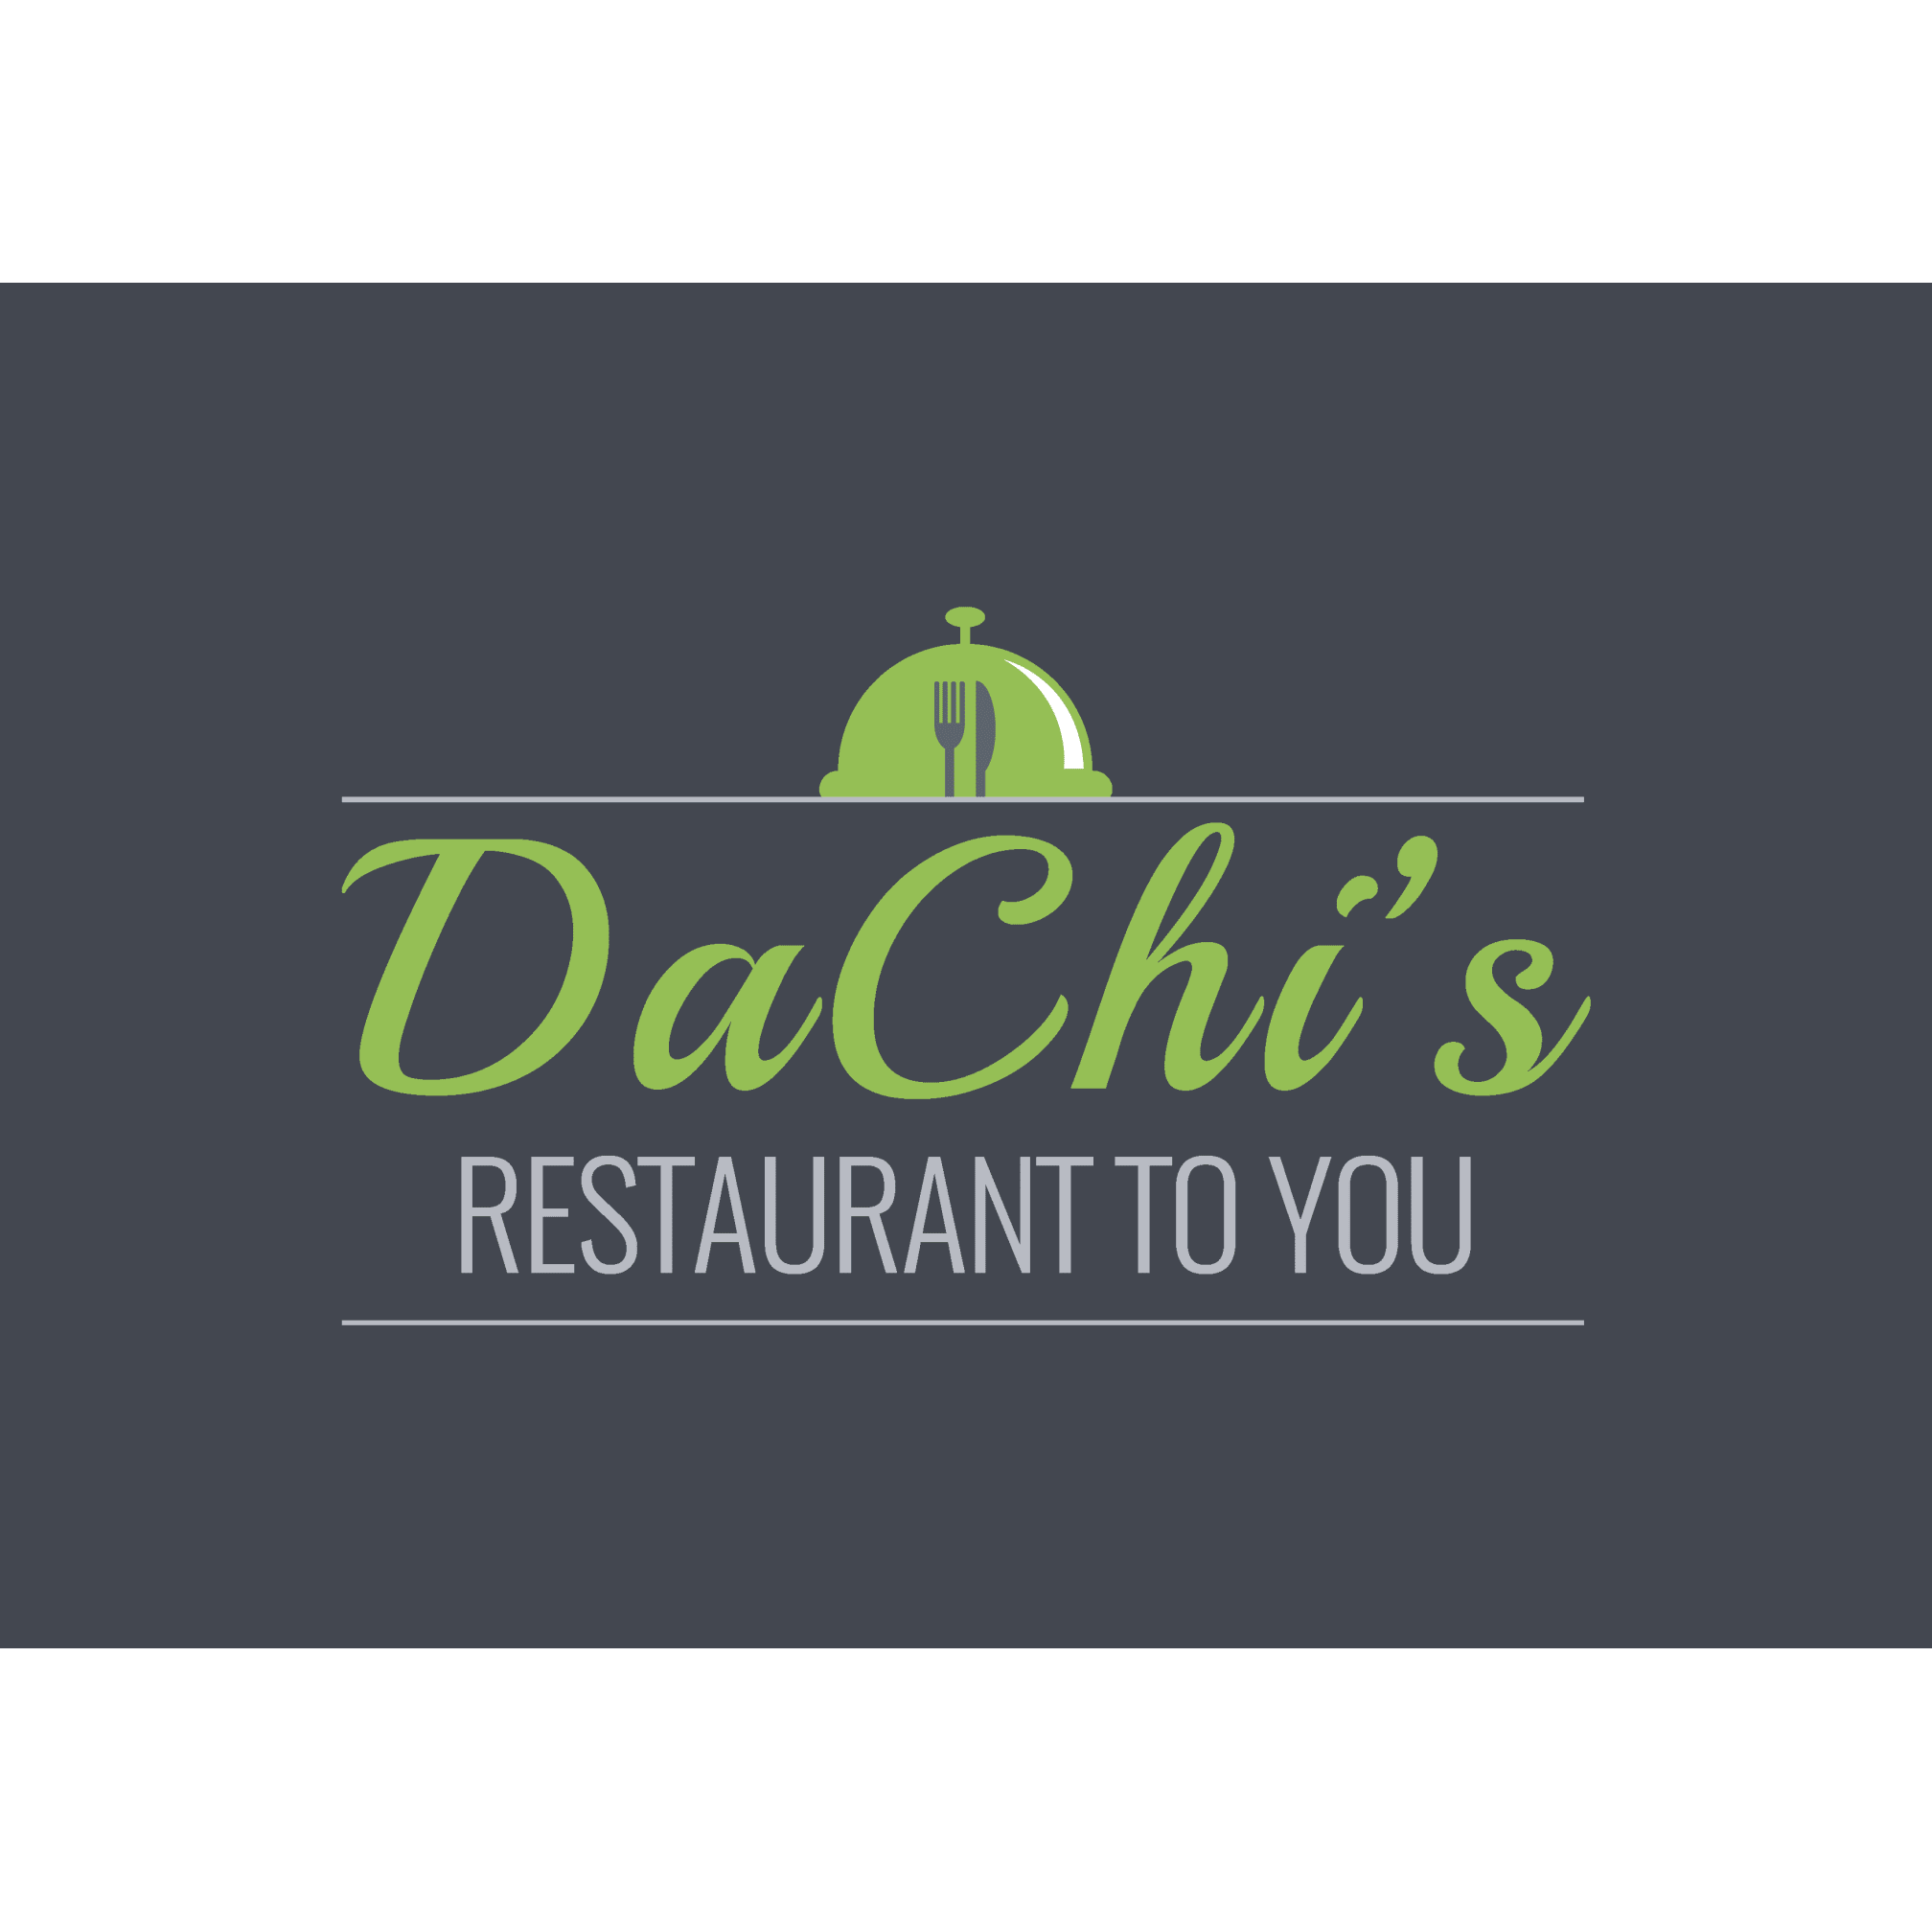 DaChis Restaurant to You